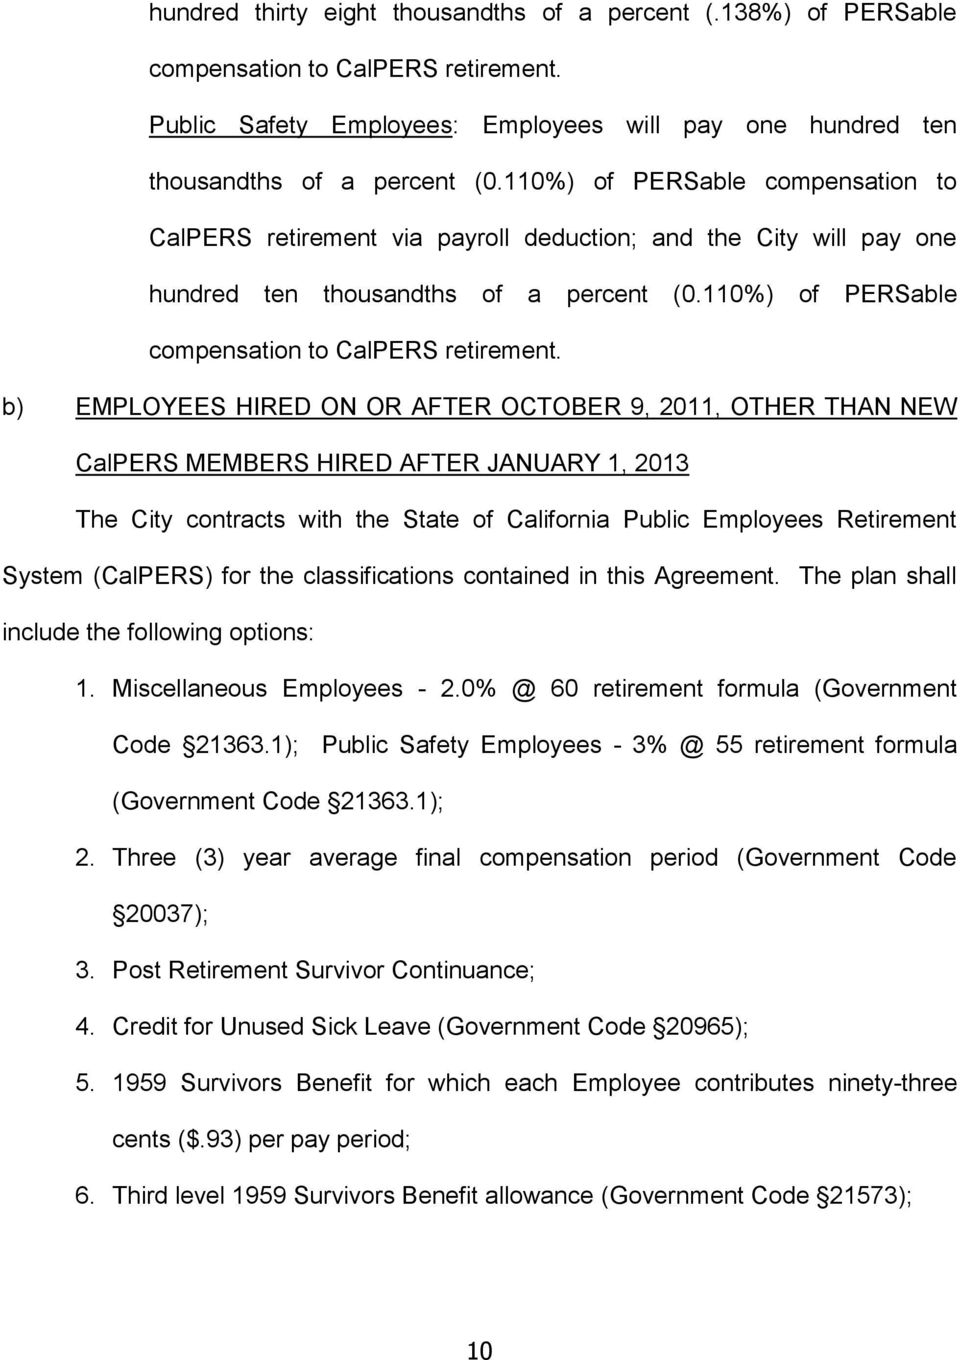 via payroll deduction; and the City will pay one hundred ten thousandths of a percent (0.110%) of PERSable compensation to CalPERS retirement.